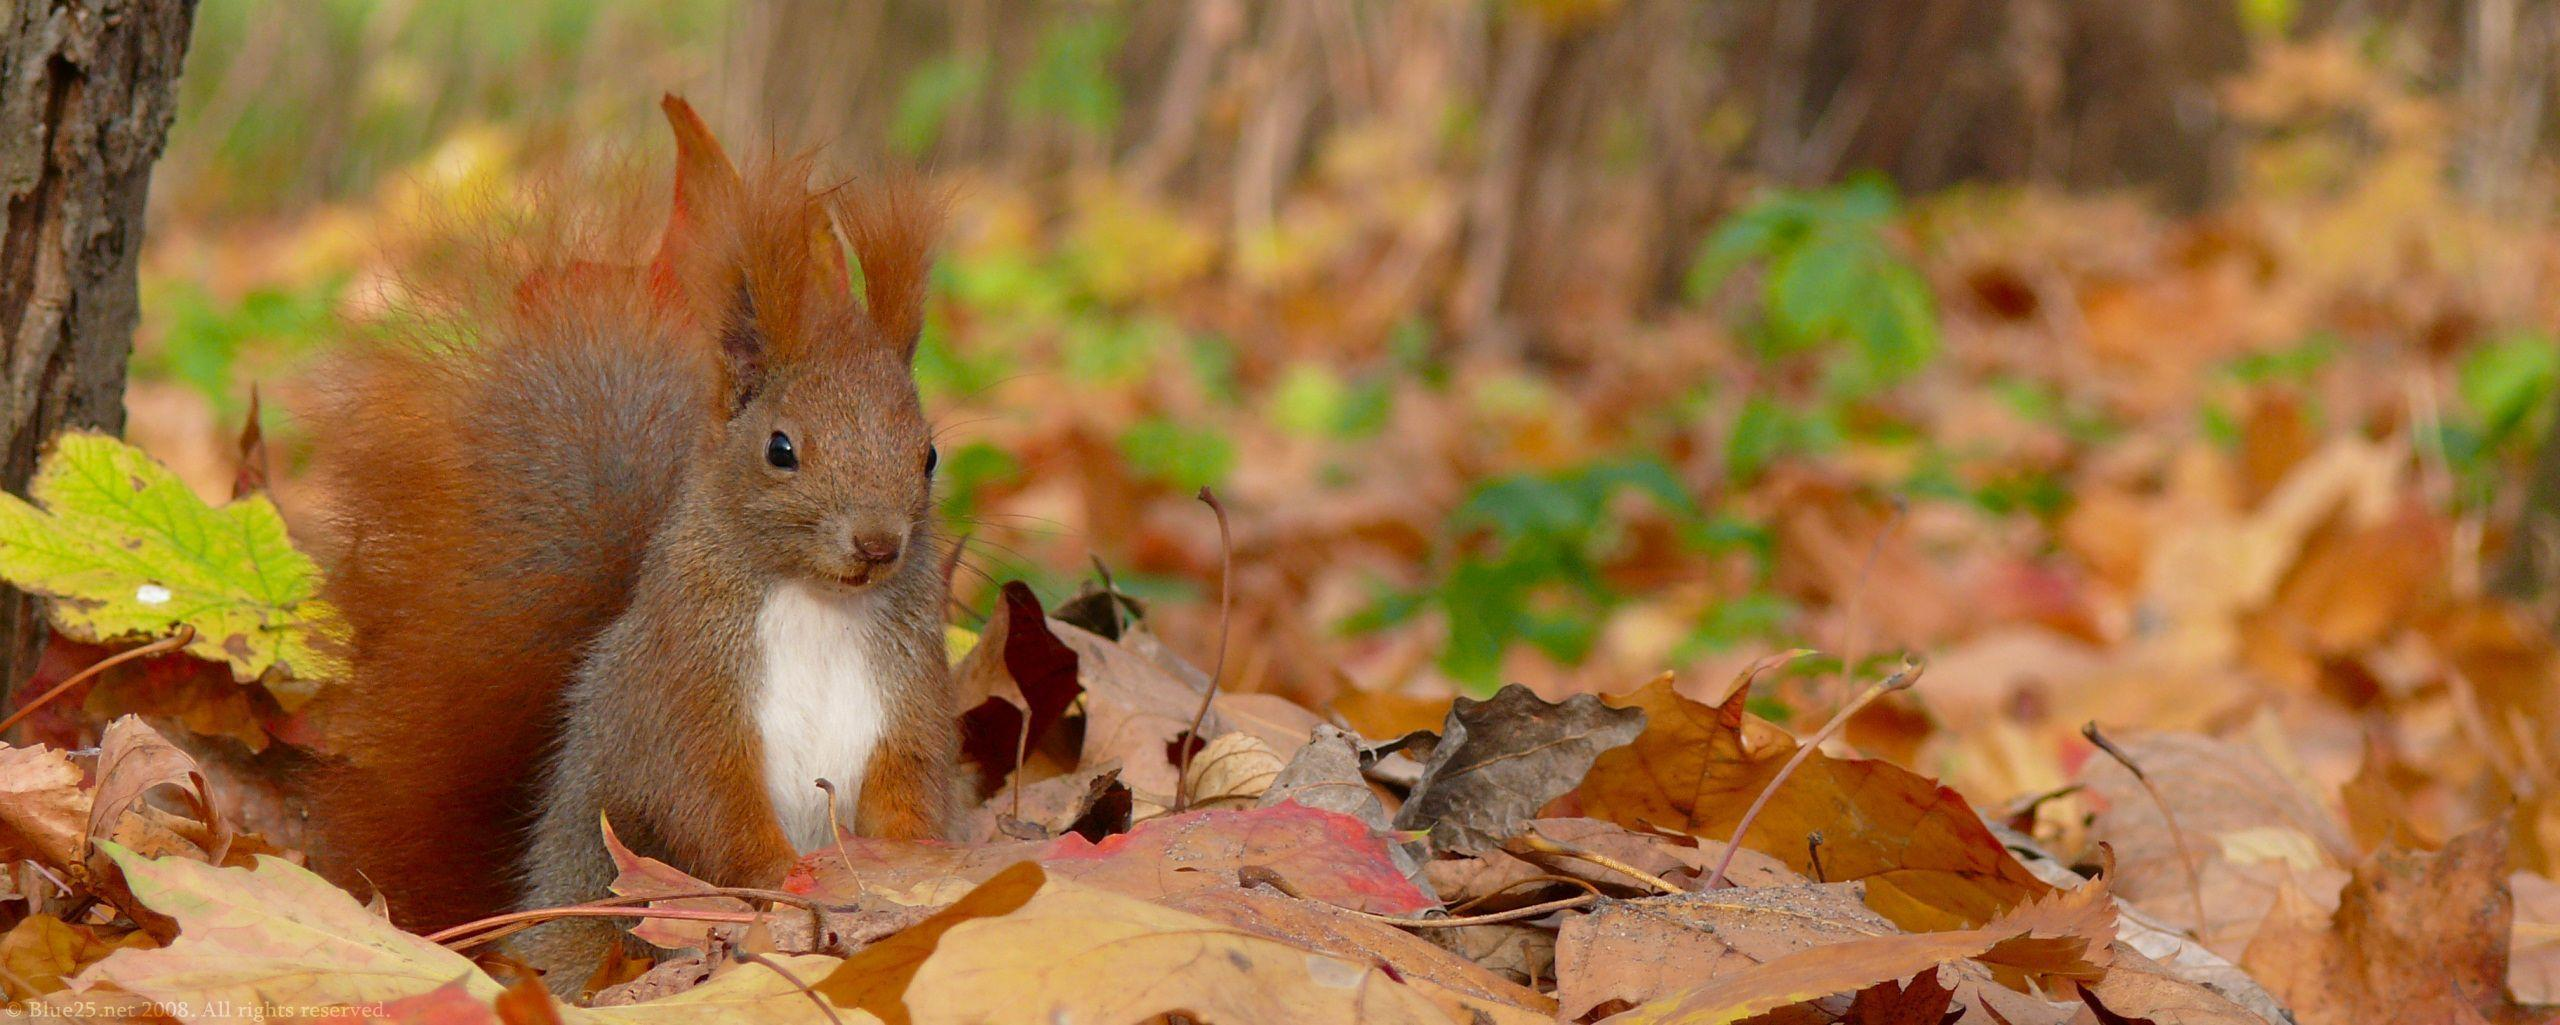 Squirrel Animal Wallpapers 3351 Image HD Wallpapers